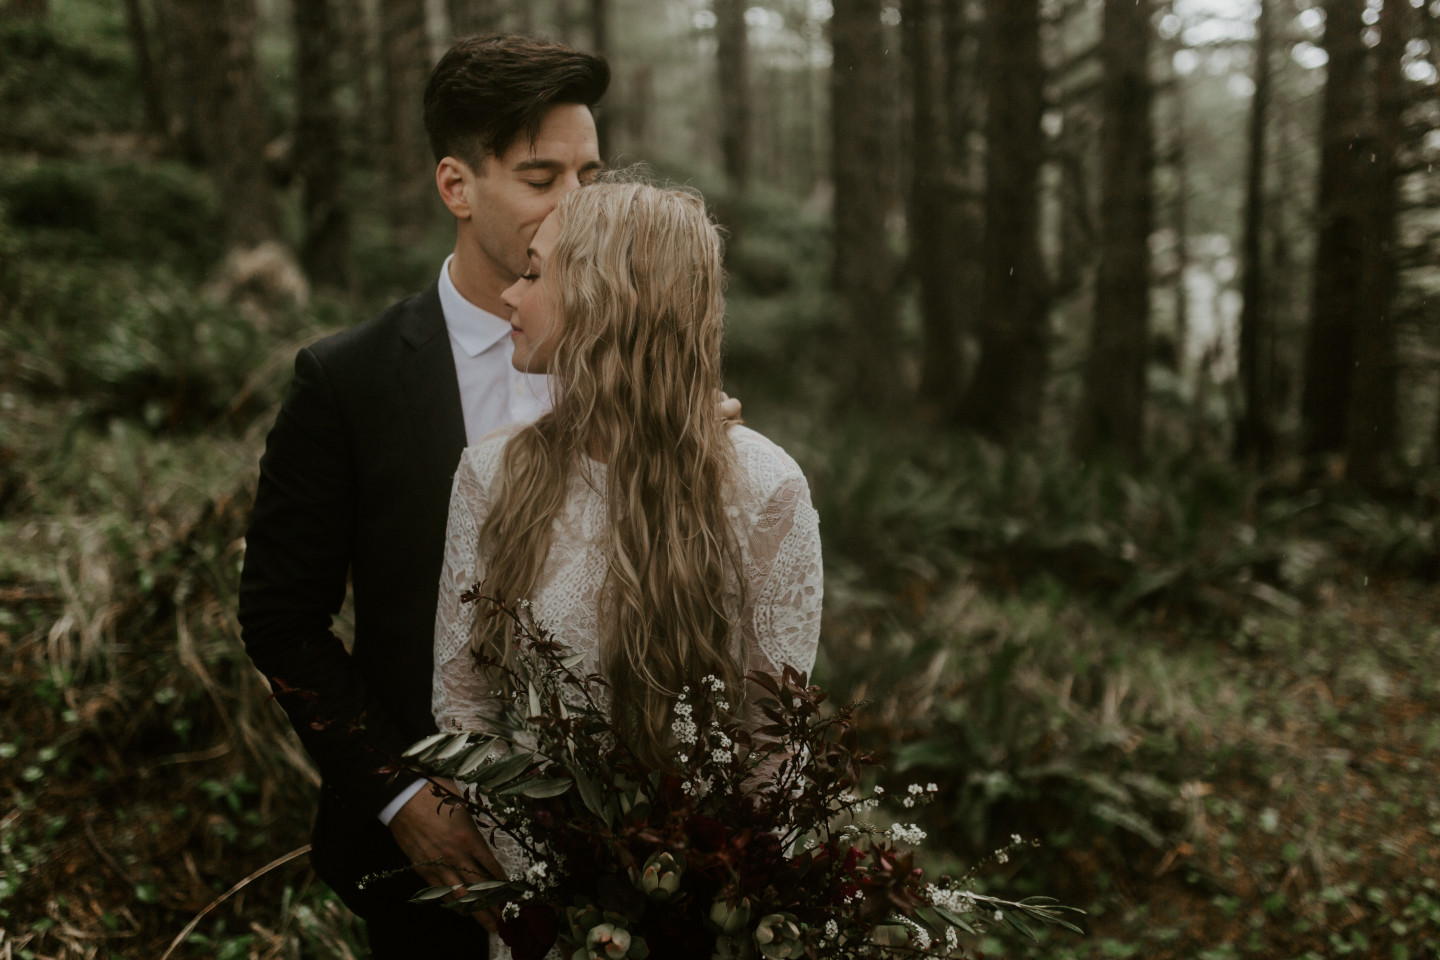 Hannah Grant hug in the treeline of Cannon Beach, Oregon during their elopement. Wedding photography in Portland Oregon by Sienna Plus Josh.